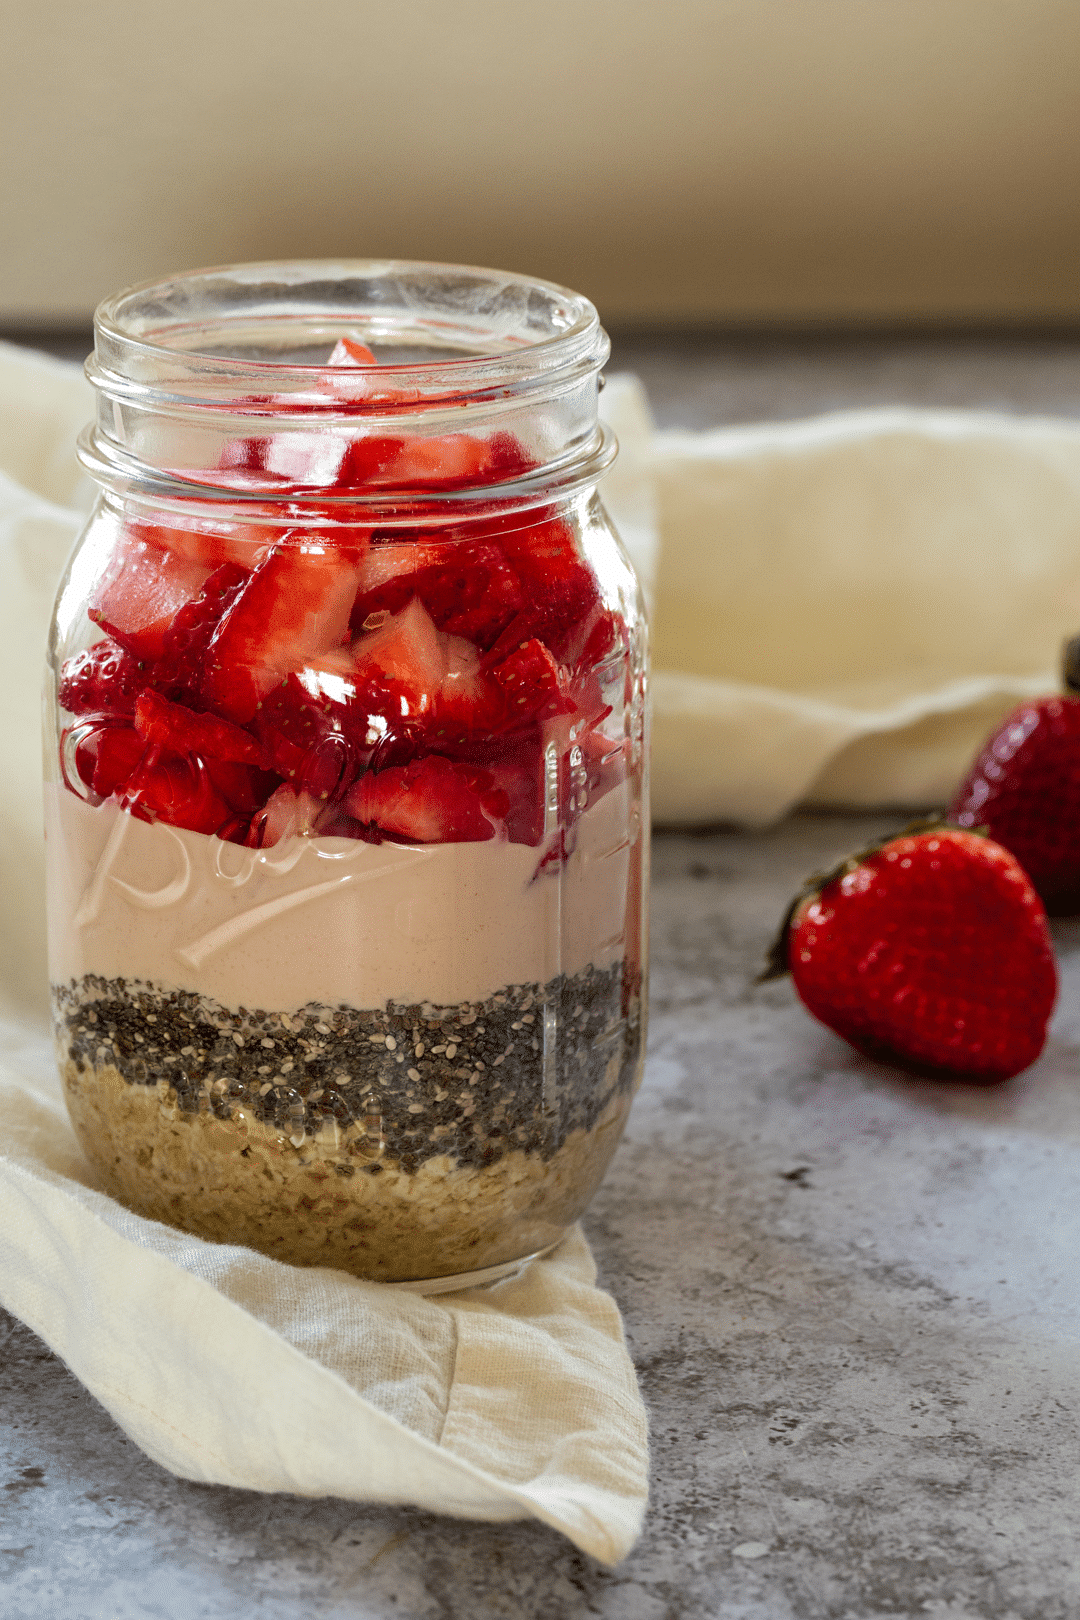 Strawberry Overnight Oats in a Jar